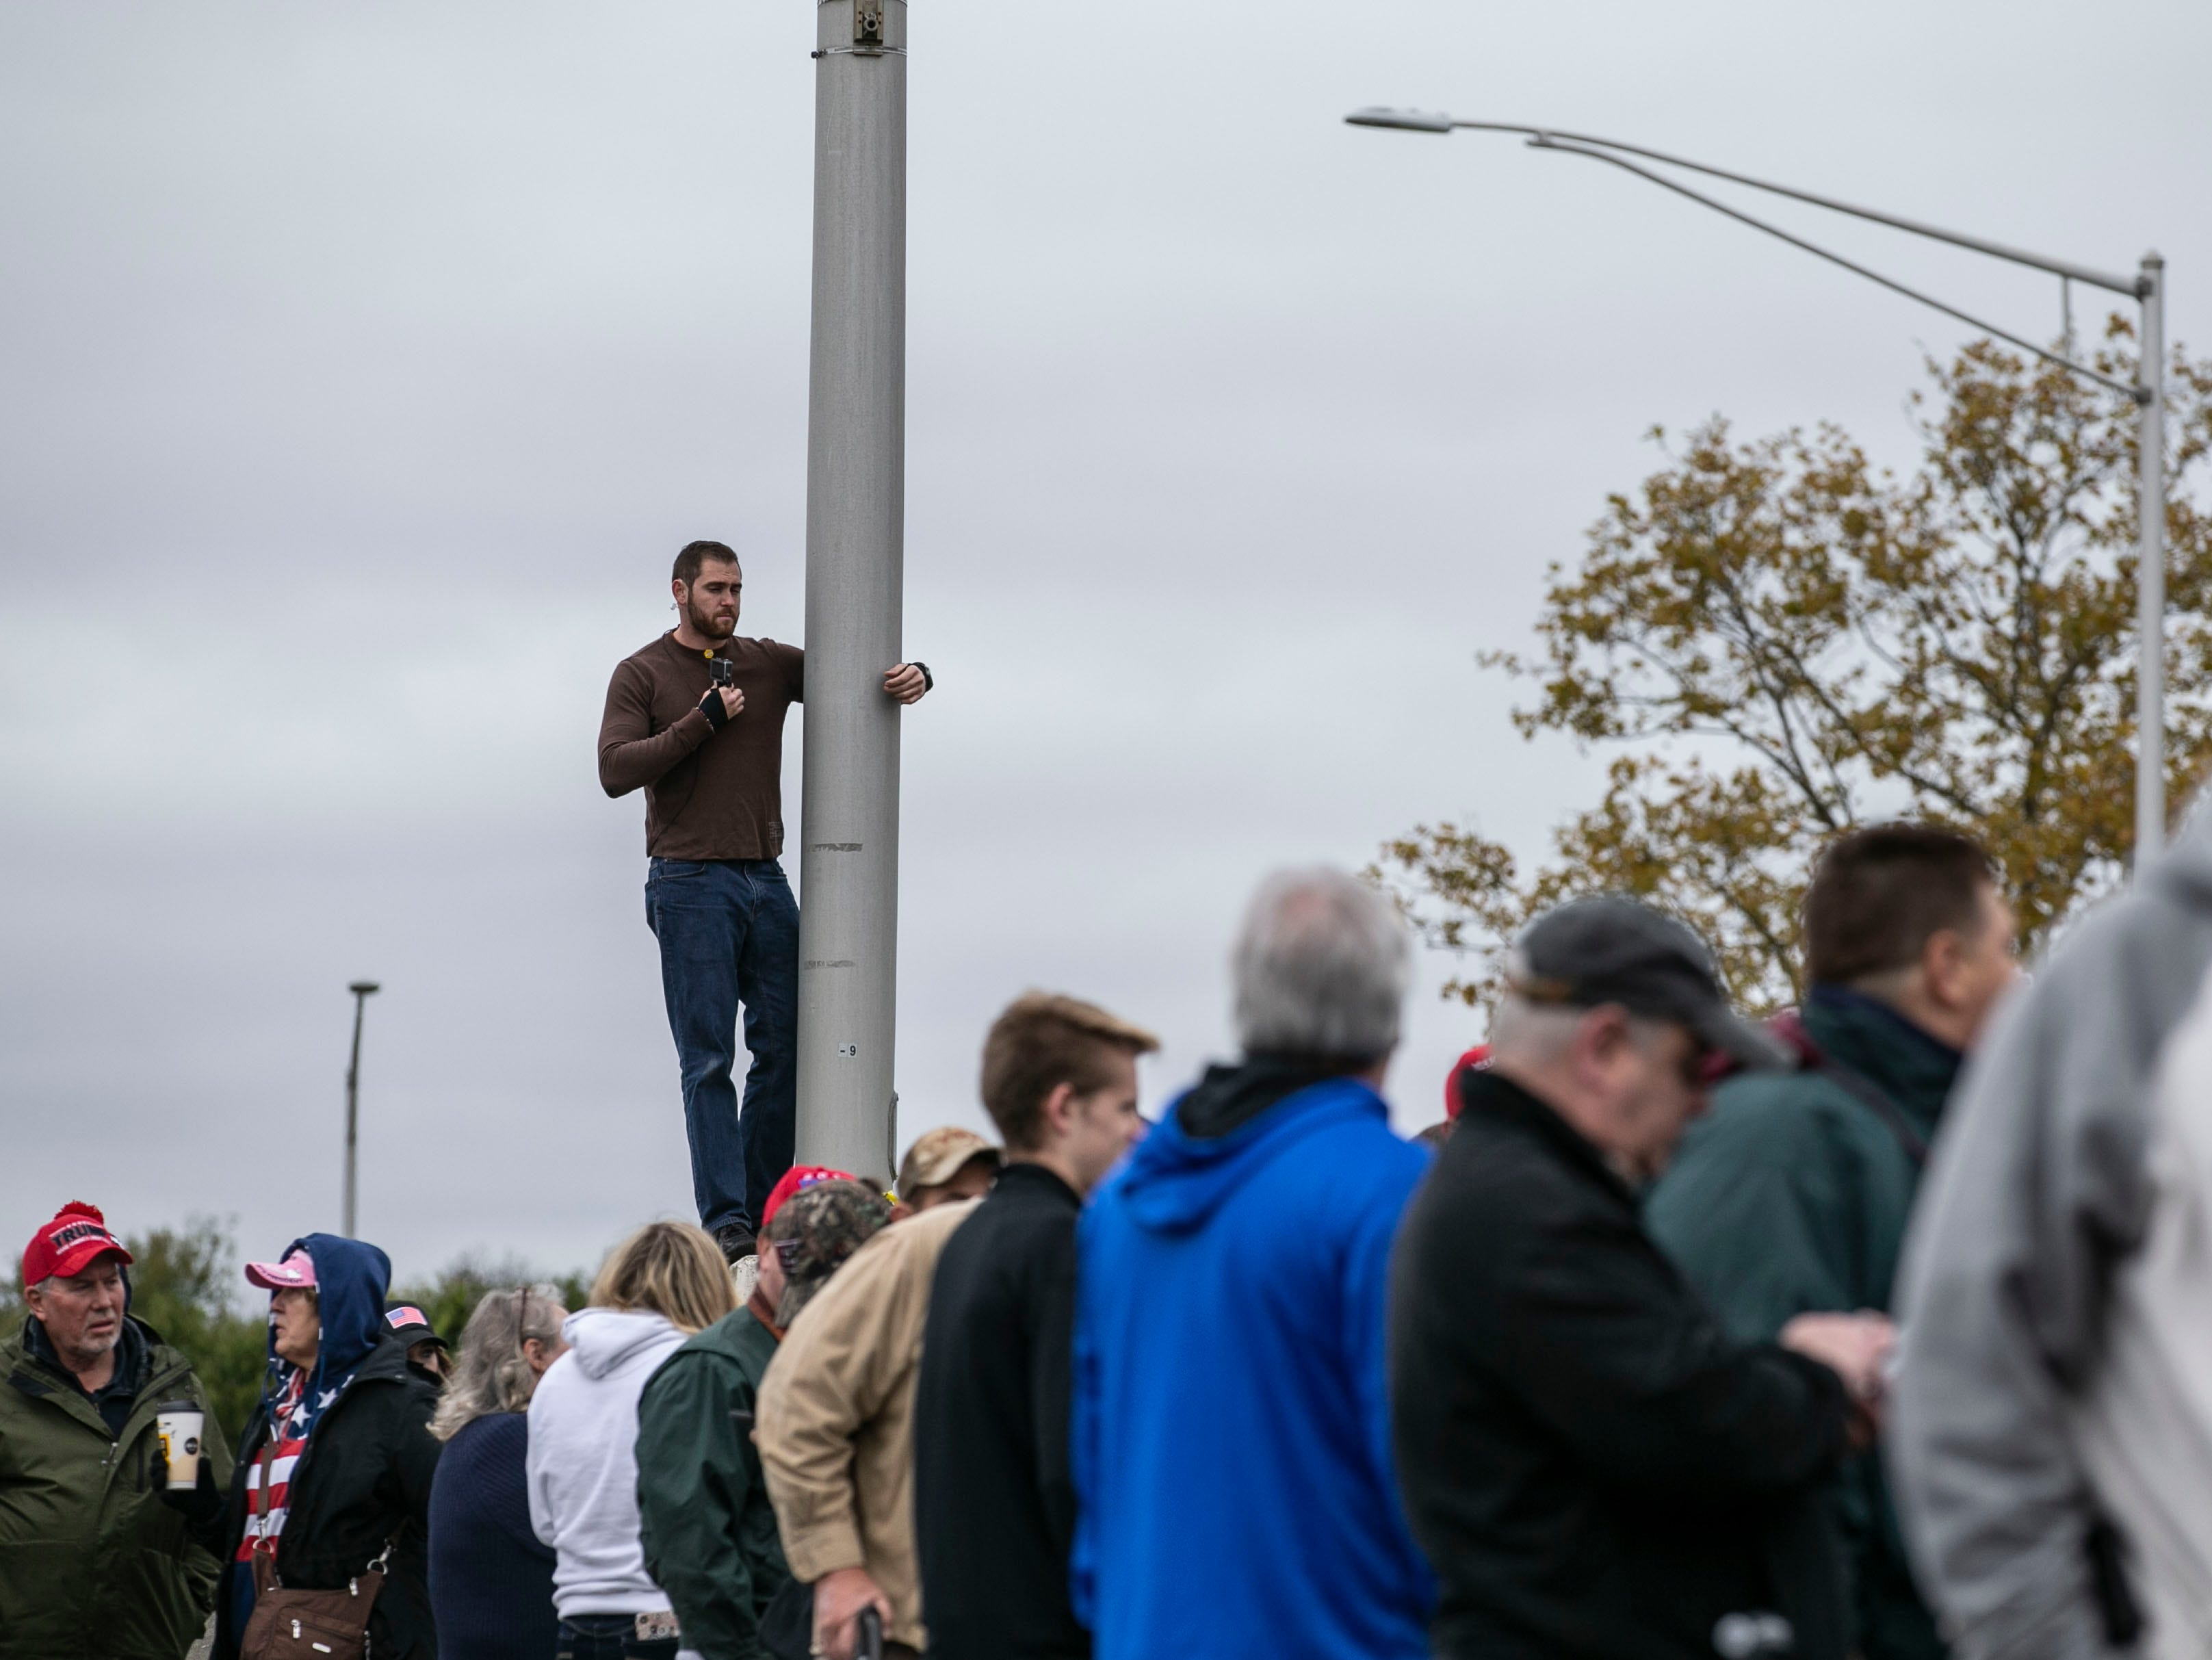 As lines grew, one man tried to get a better look of the crowd from a pole while waiting in a parking lot outside the Alumni Coliseum for the speech of President Donald Trump later Saturday night.